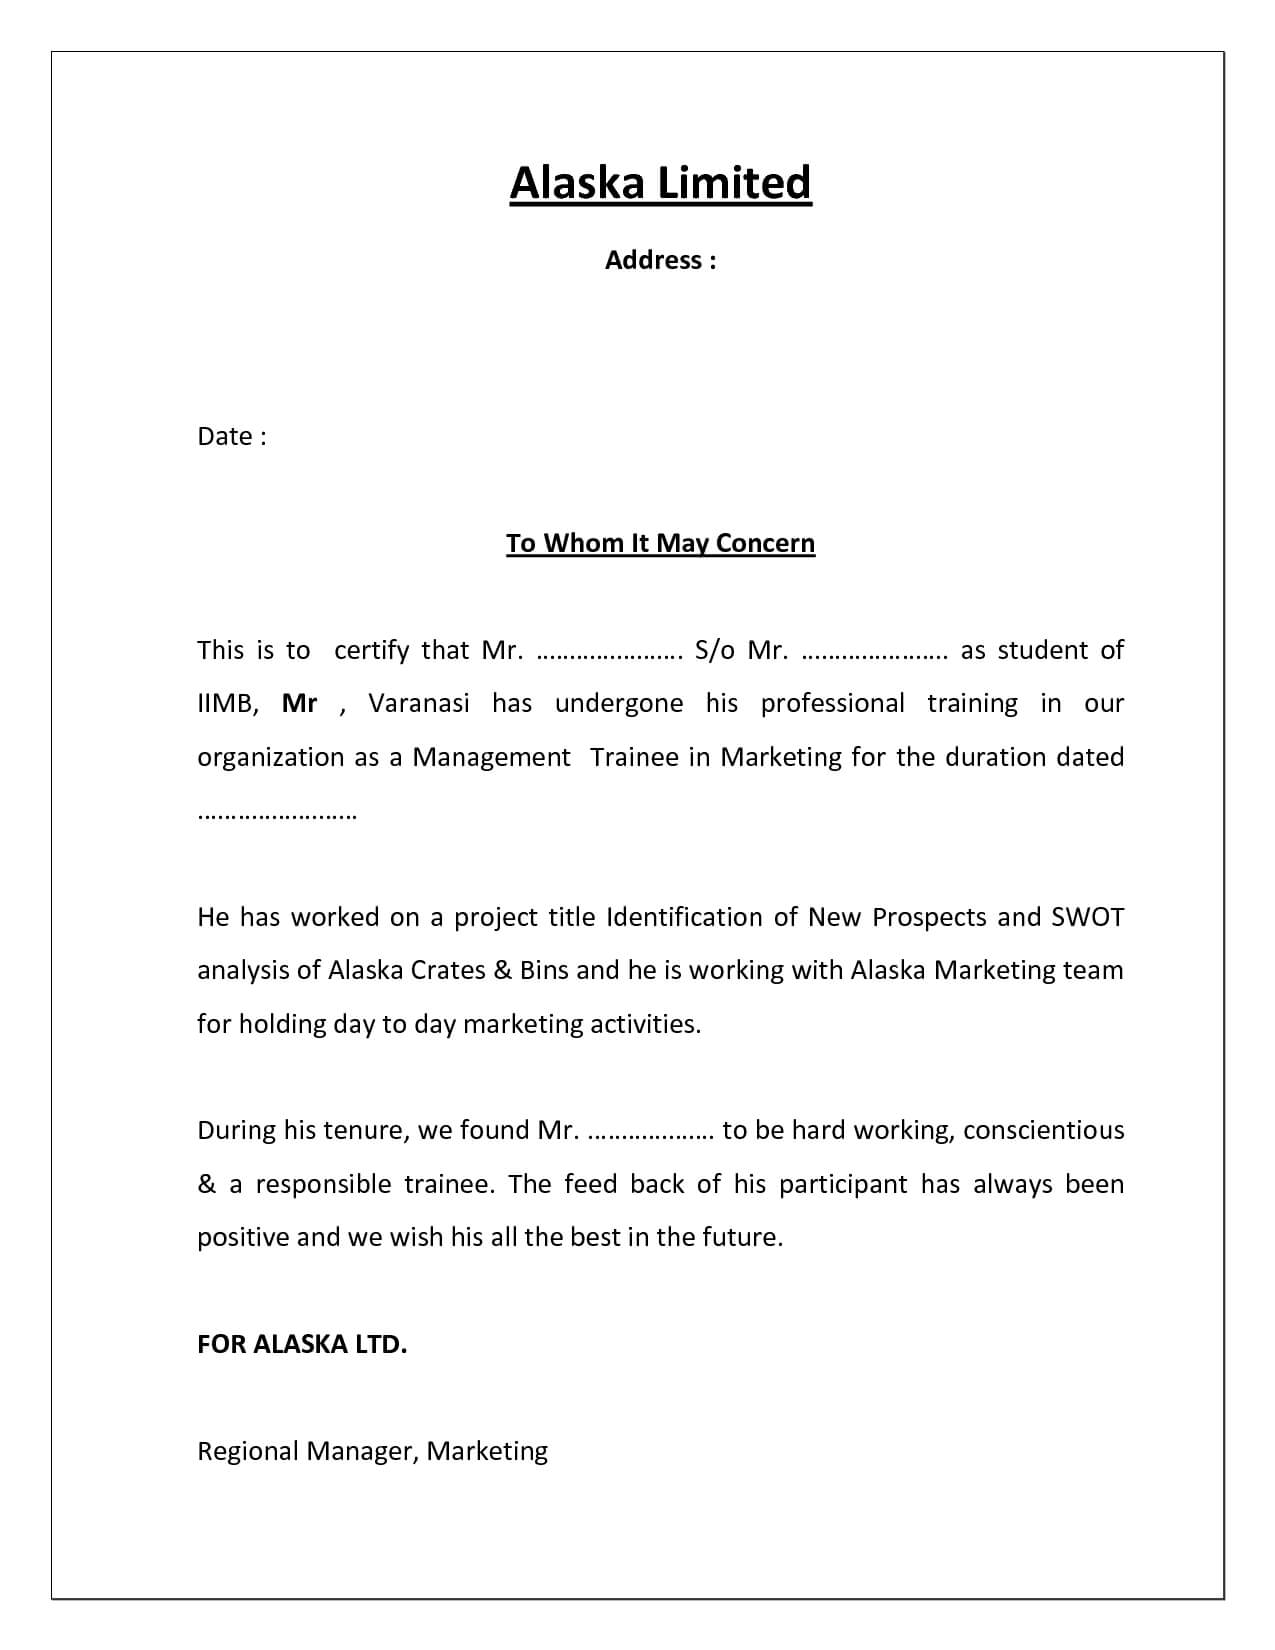 Pinnews Pb On Resume Templates   Lettering, Certificate with regard to Construction Certificate Of Completion Template